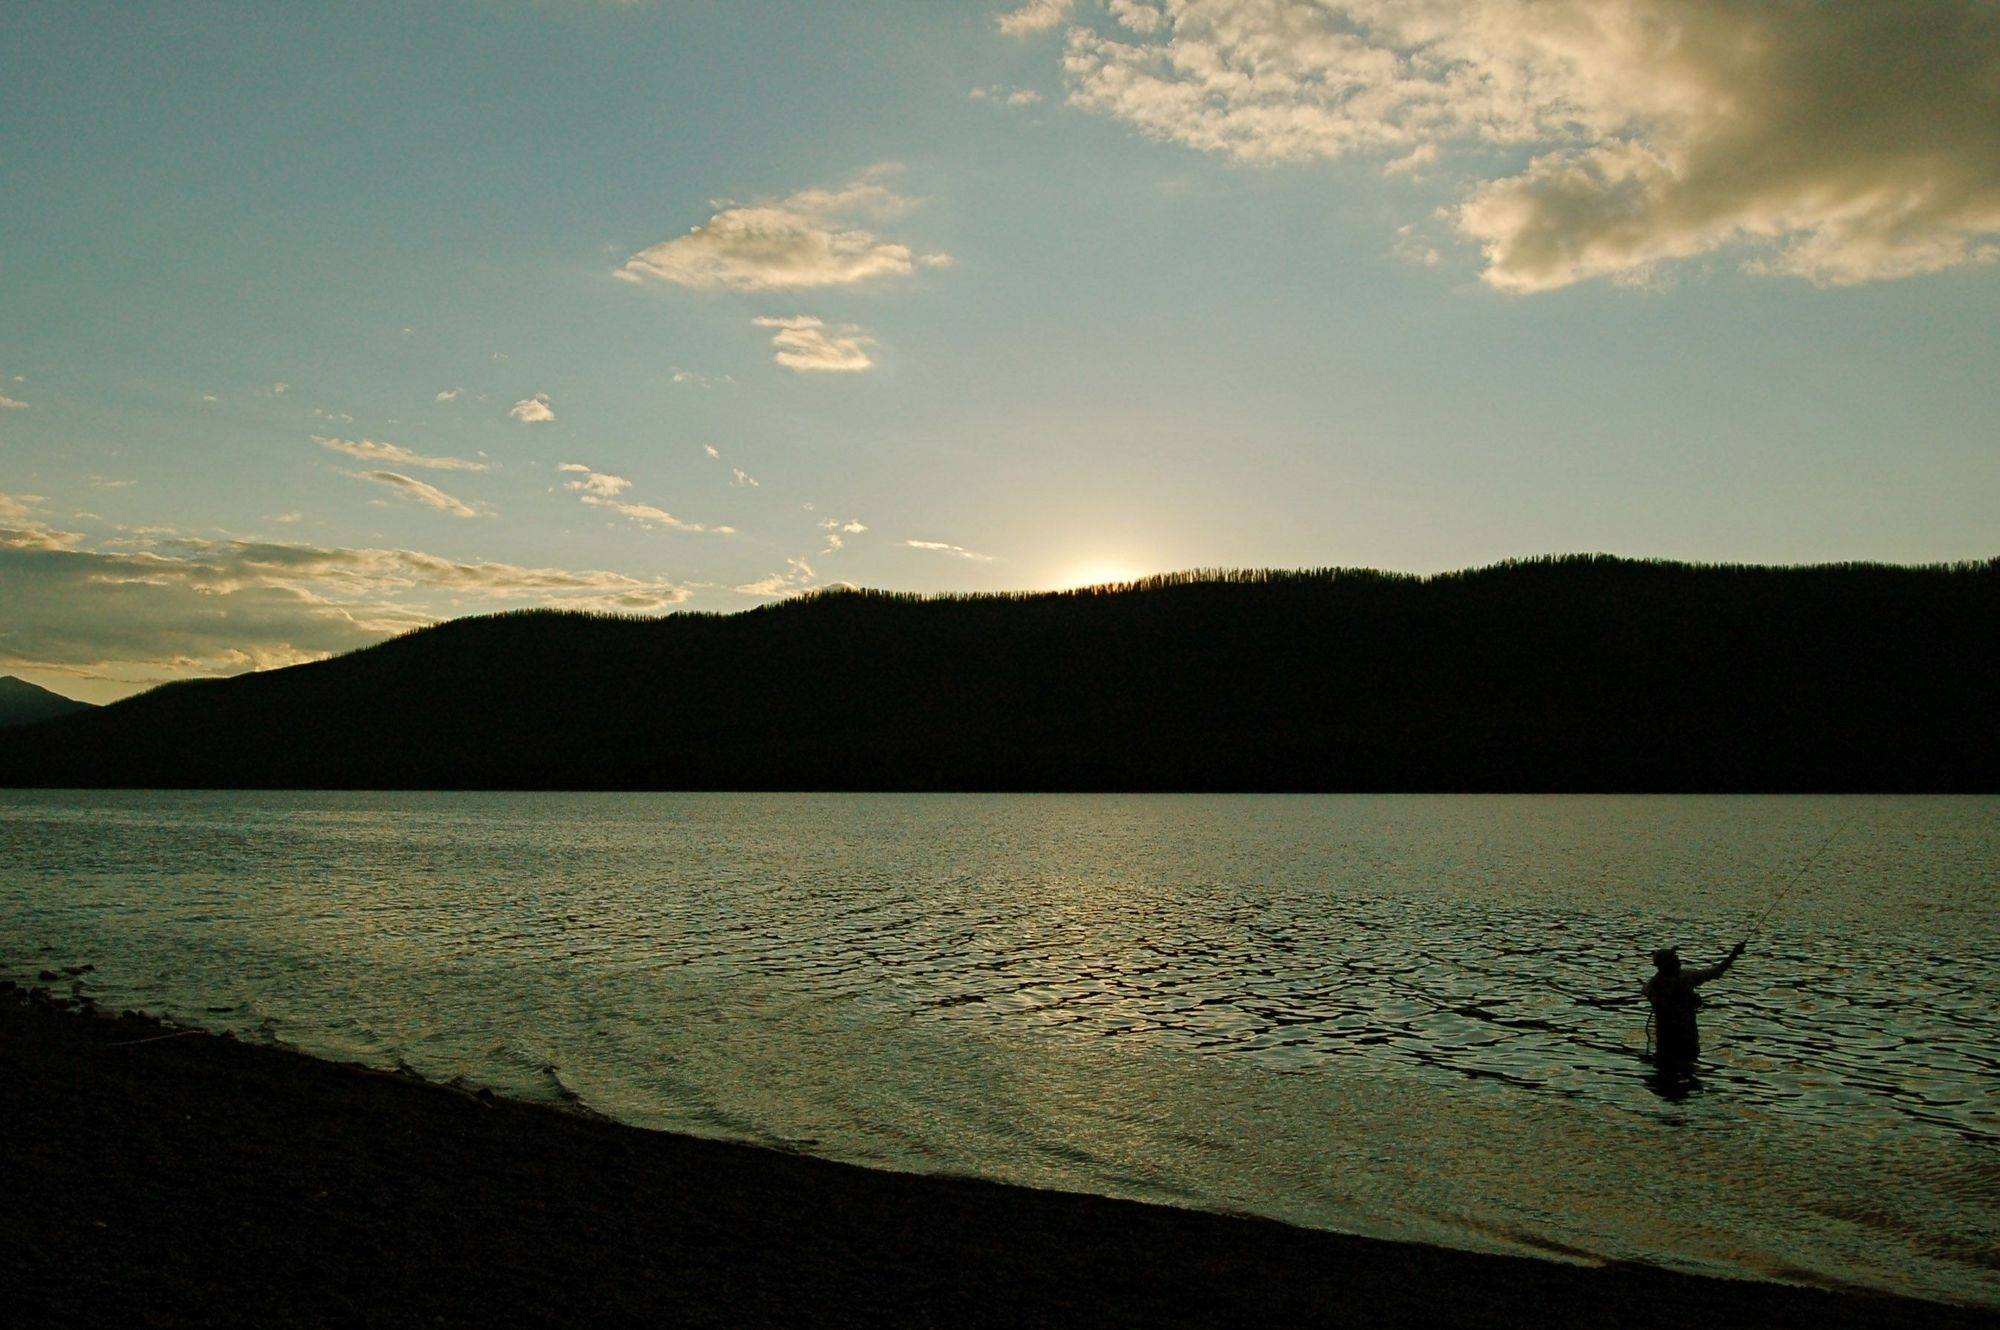 This picture was taken at Lake McDonald in Glacier National Park in September of 2008. For me the fly fisherman in silhouette made the picture.